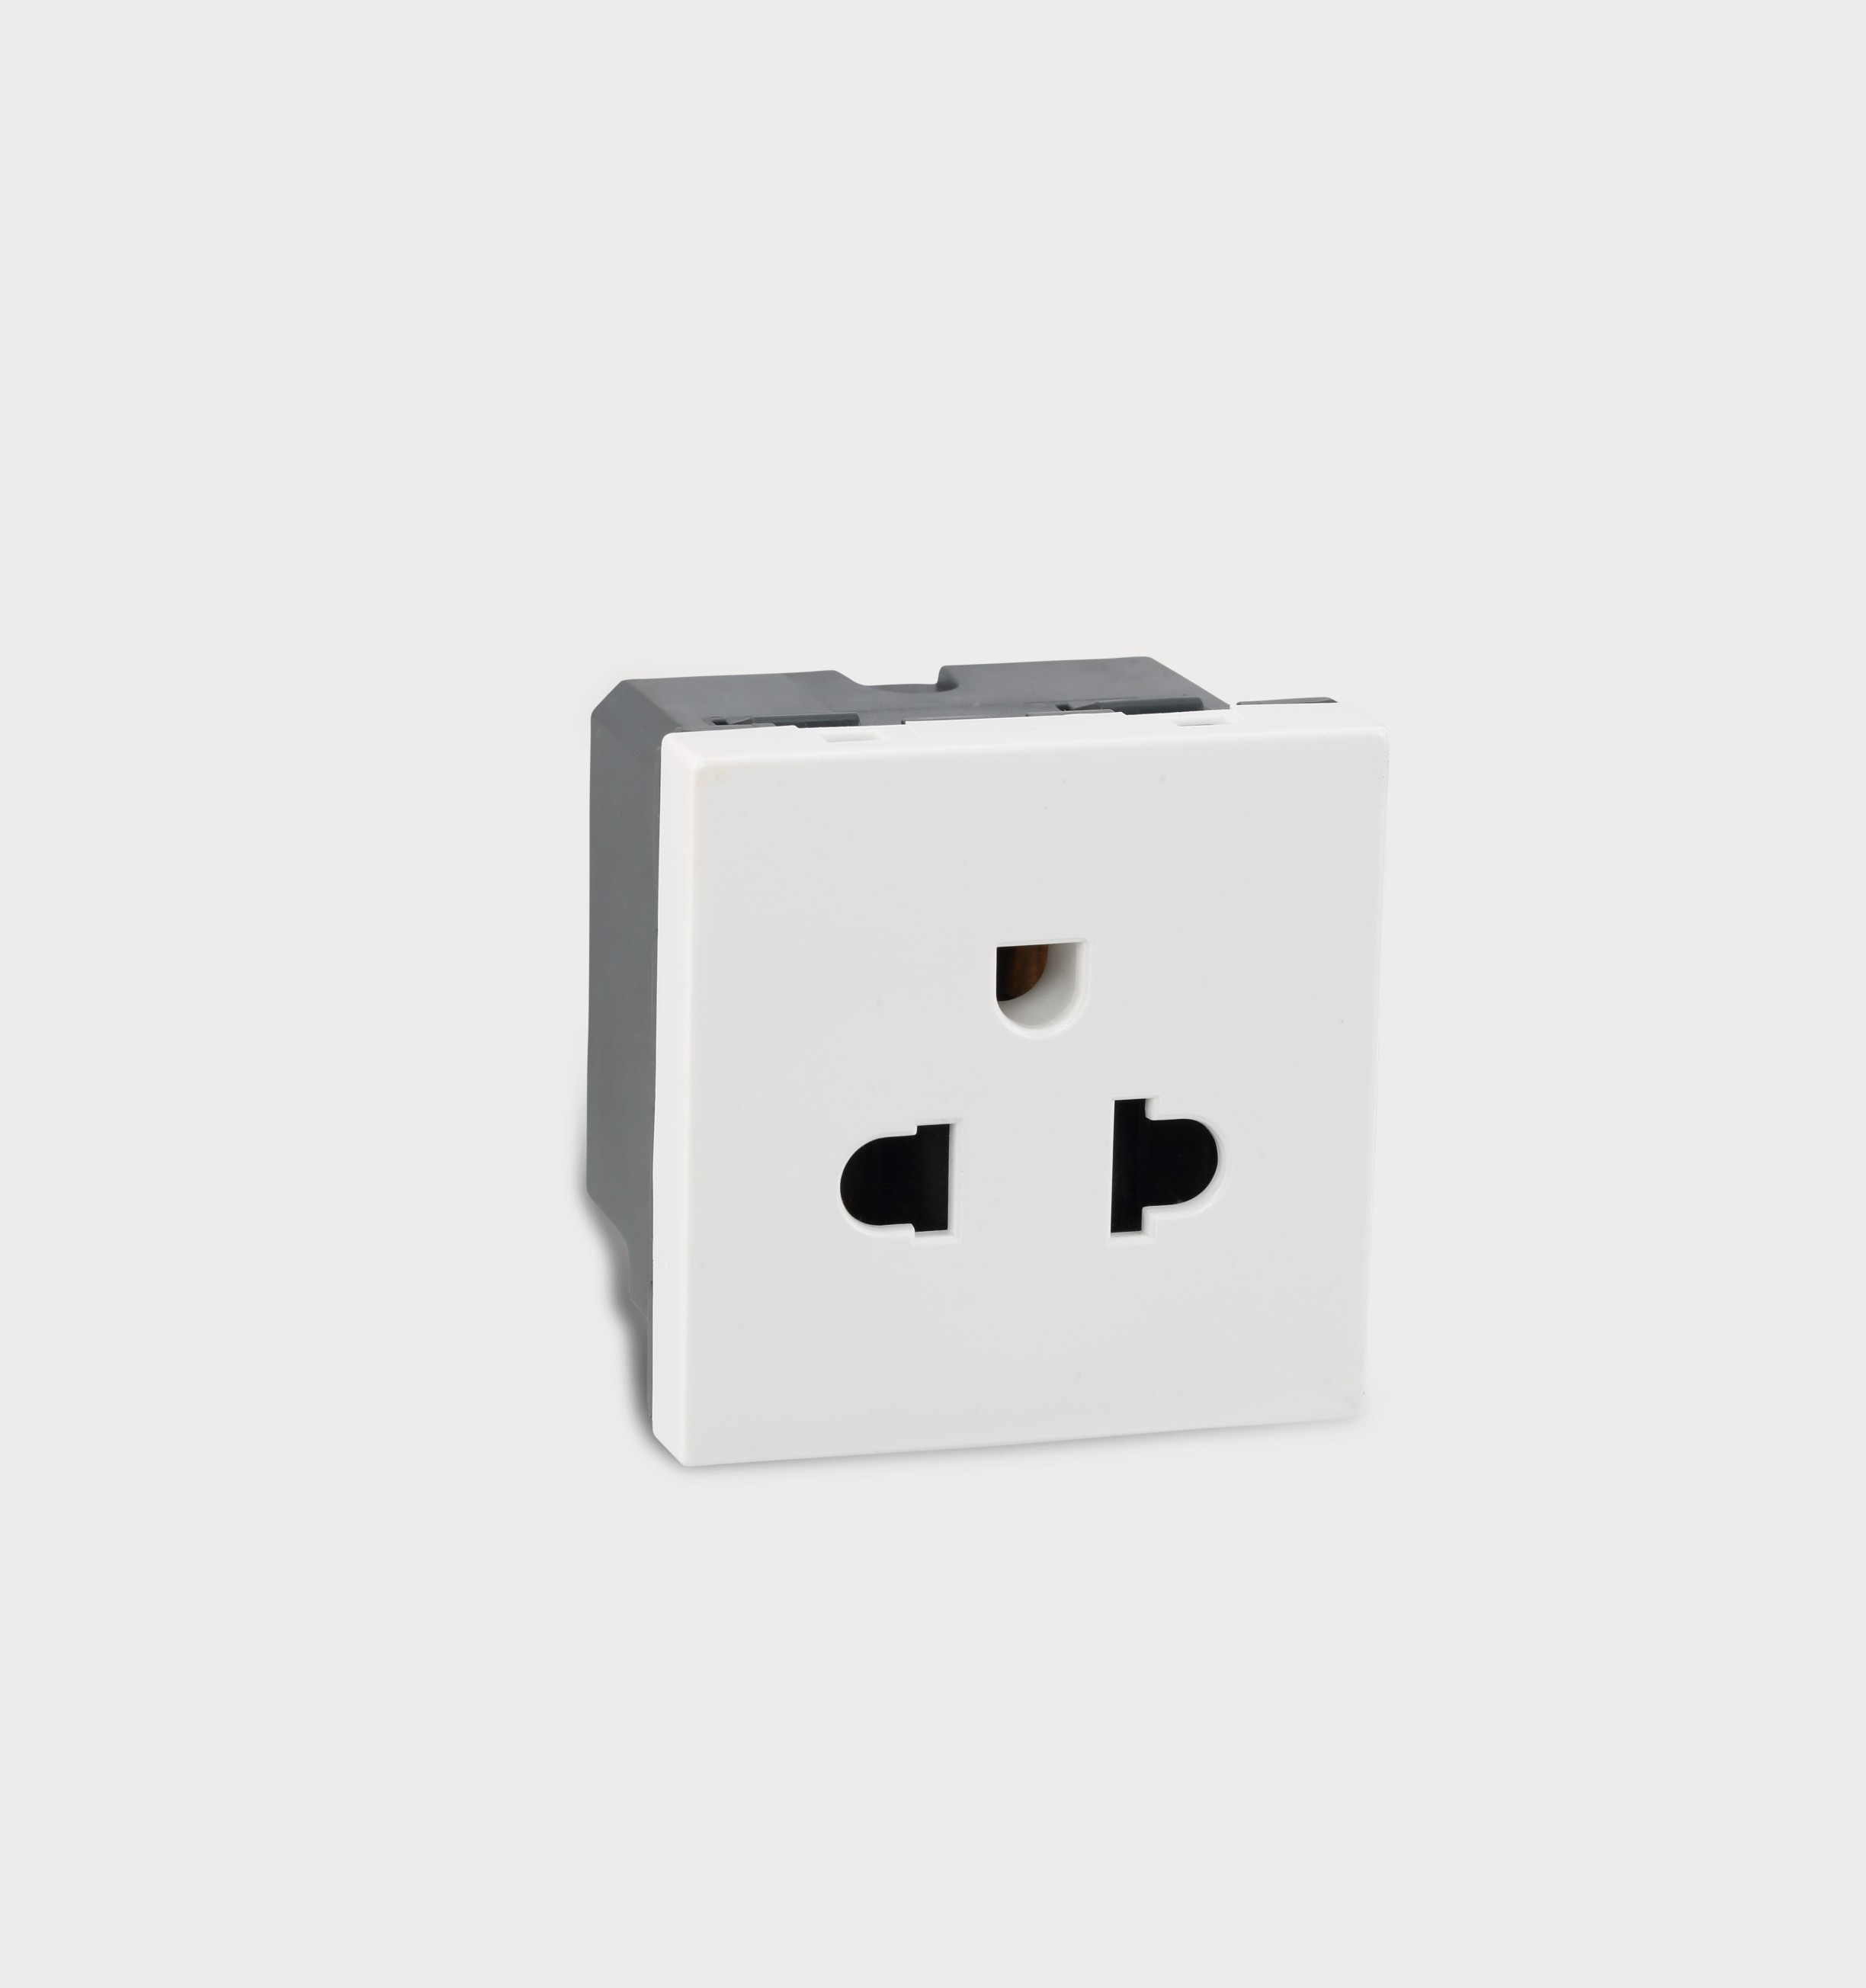 6/16A Euro Socket (White) 673046 - Electrical and Networking ...